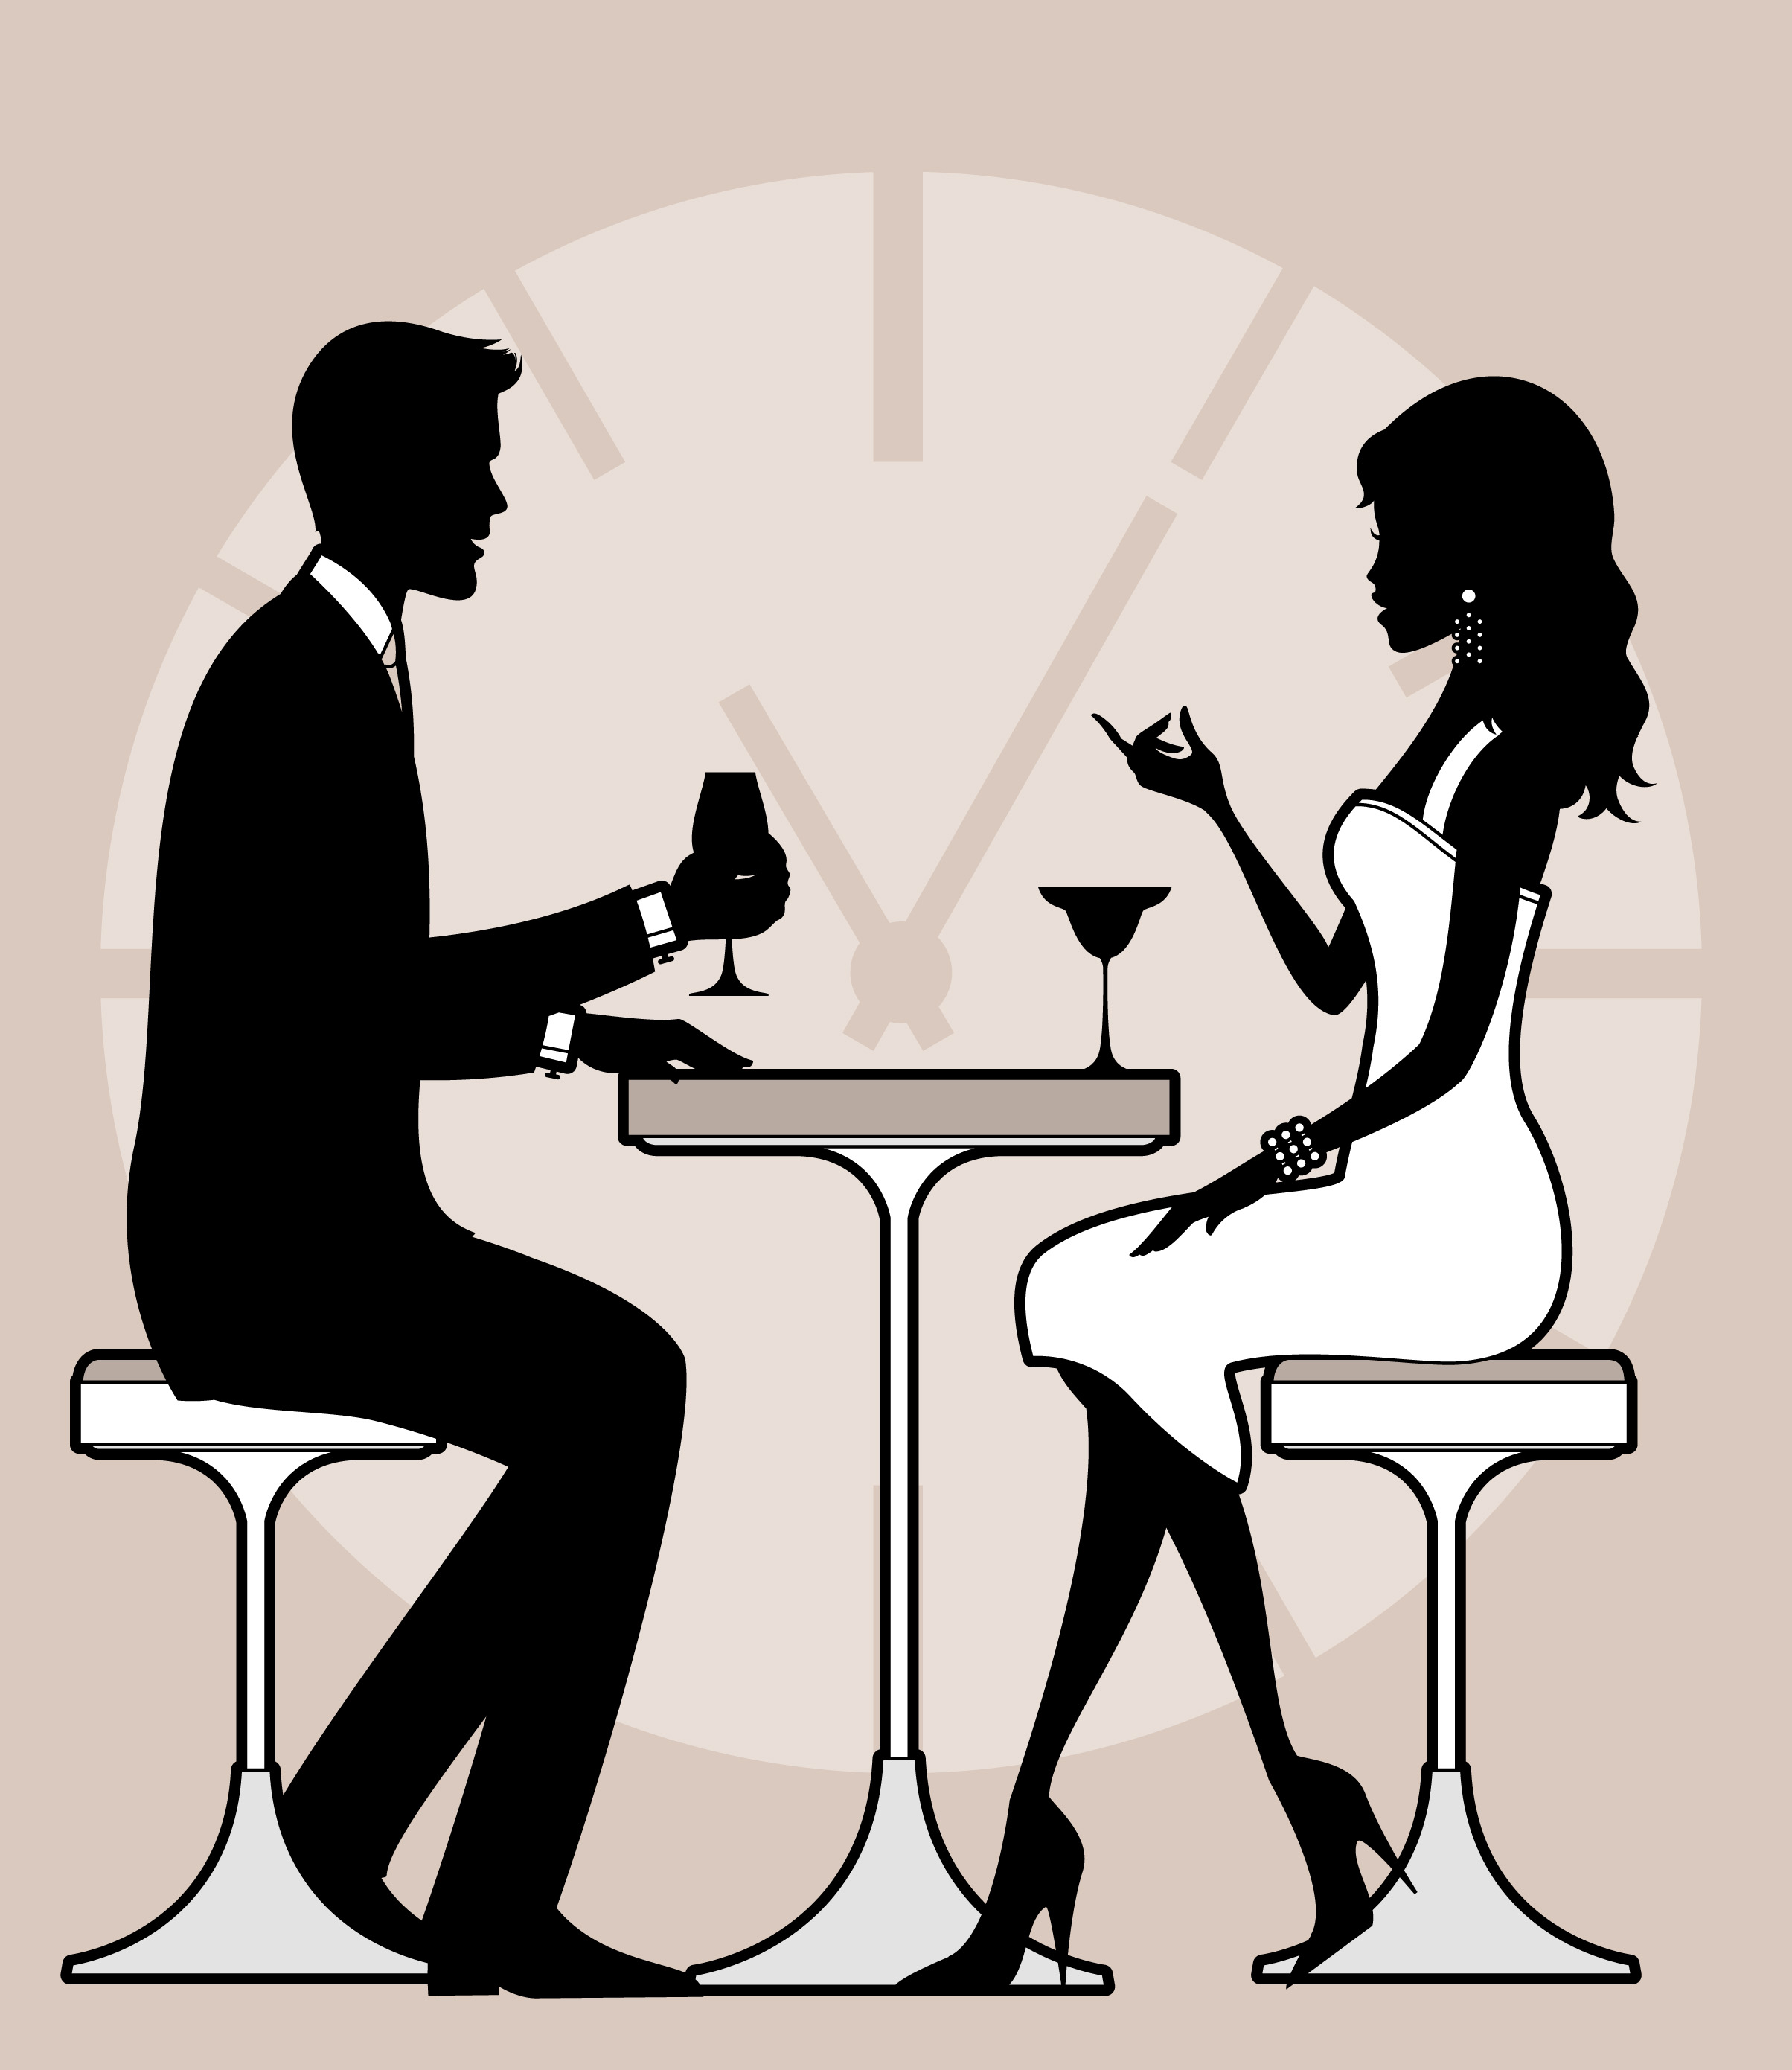 Table for four speed dating